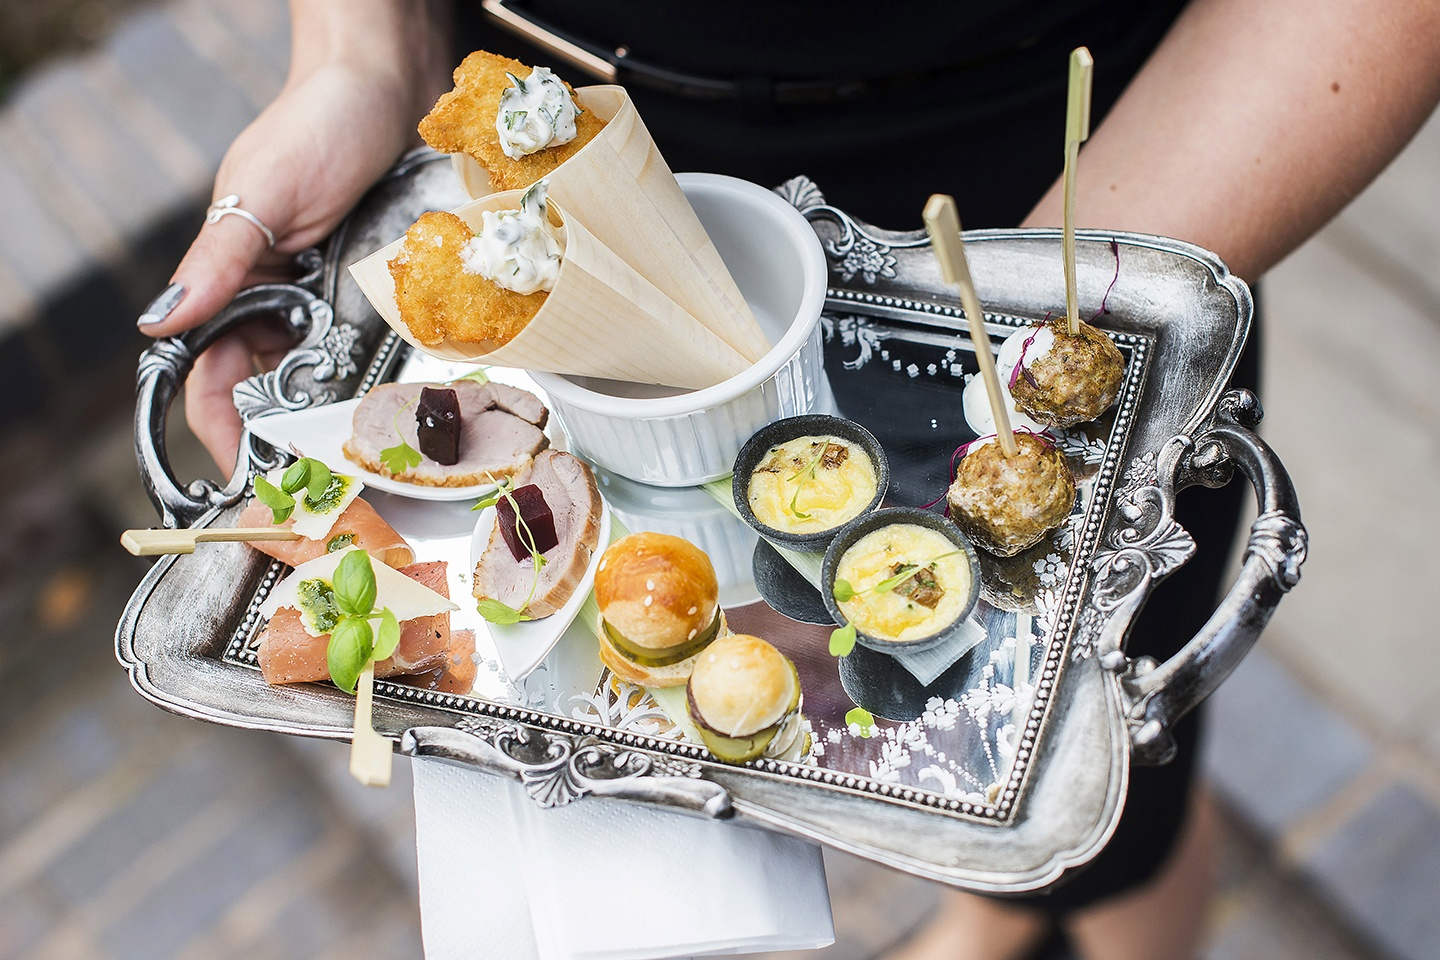 Treat your guests with mouth-watering canapés from the expert caterers while you celebrate. It's a great way to kick off the festivities at The Pear Tree